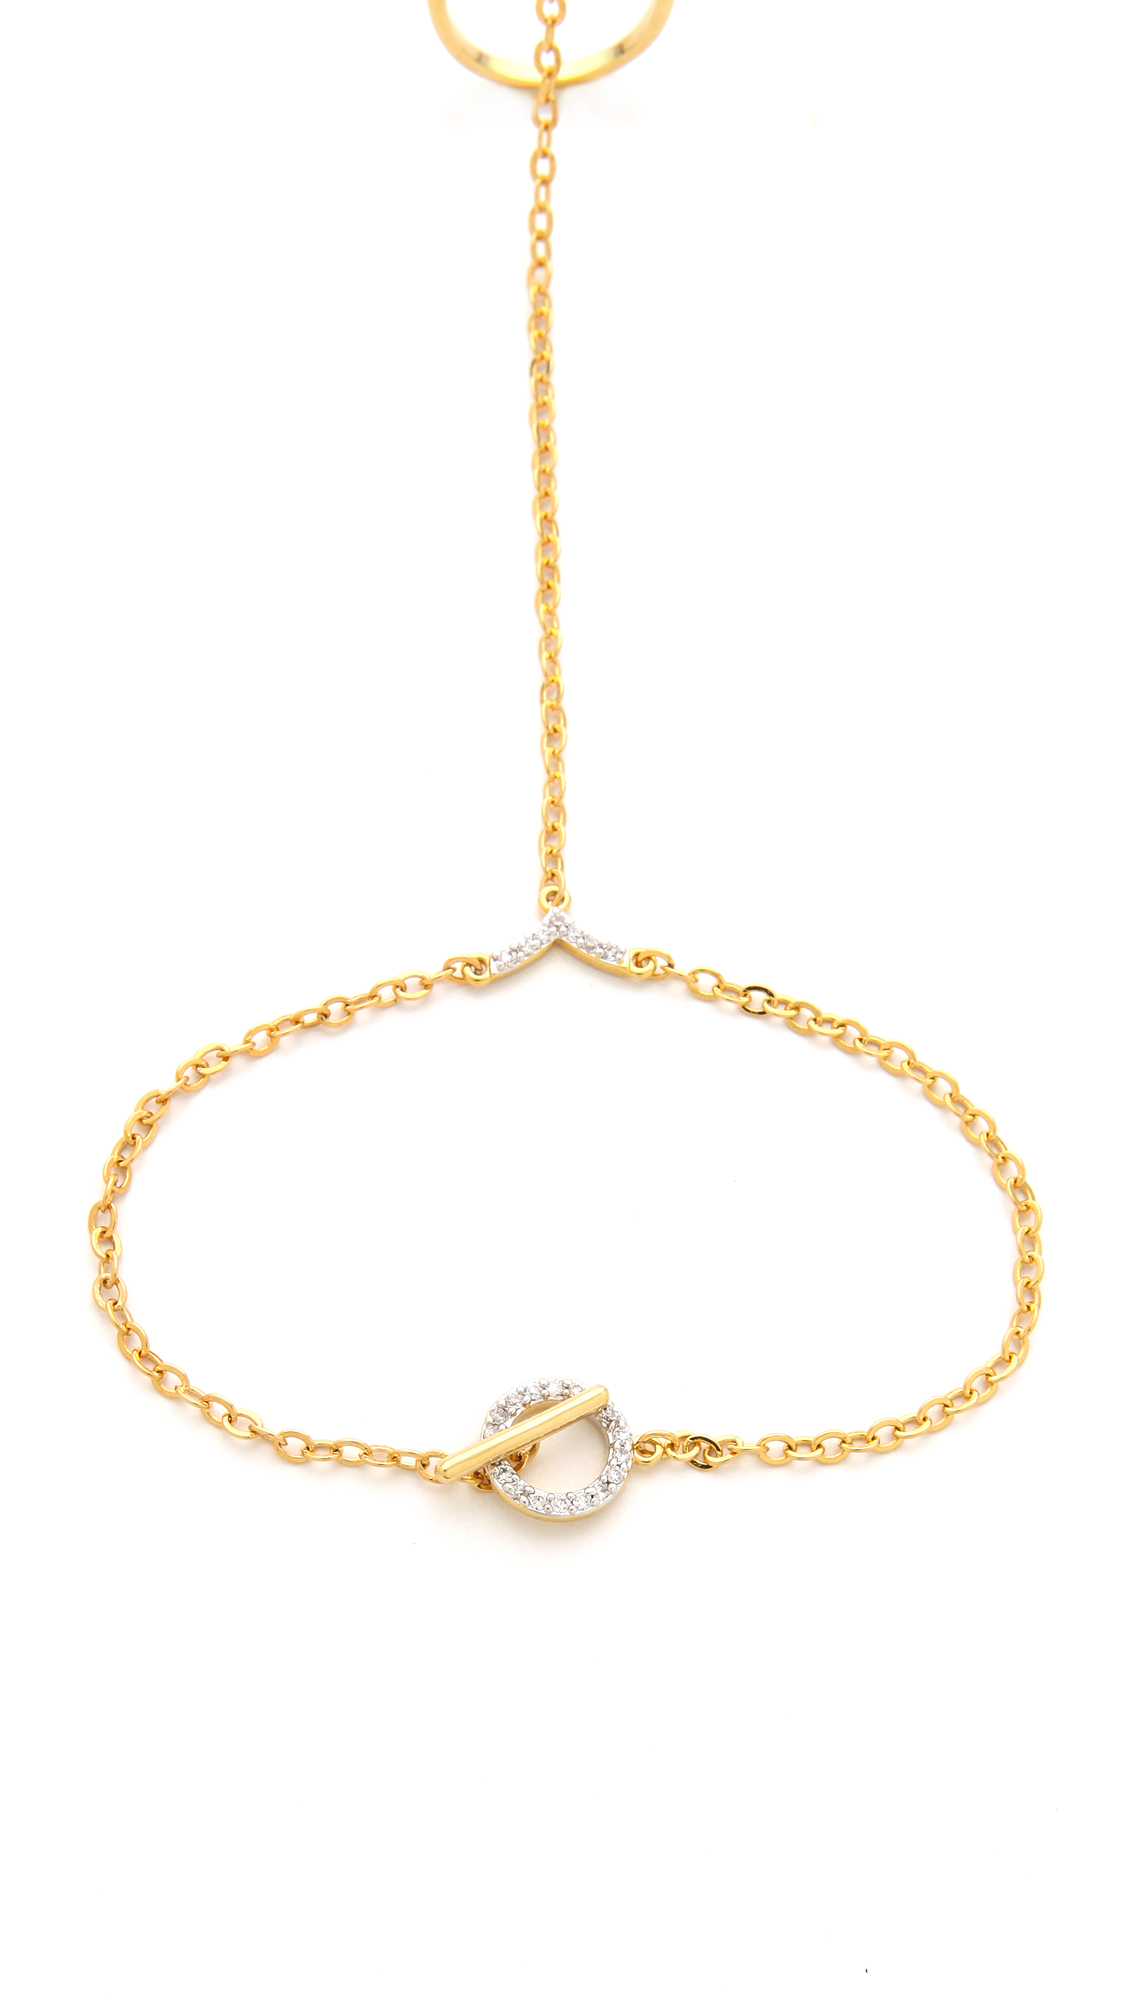 Noir Jewelry Double Ring Hand Chain in Gold (Metallic)